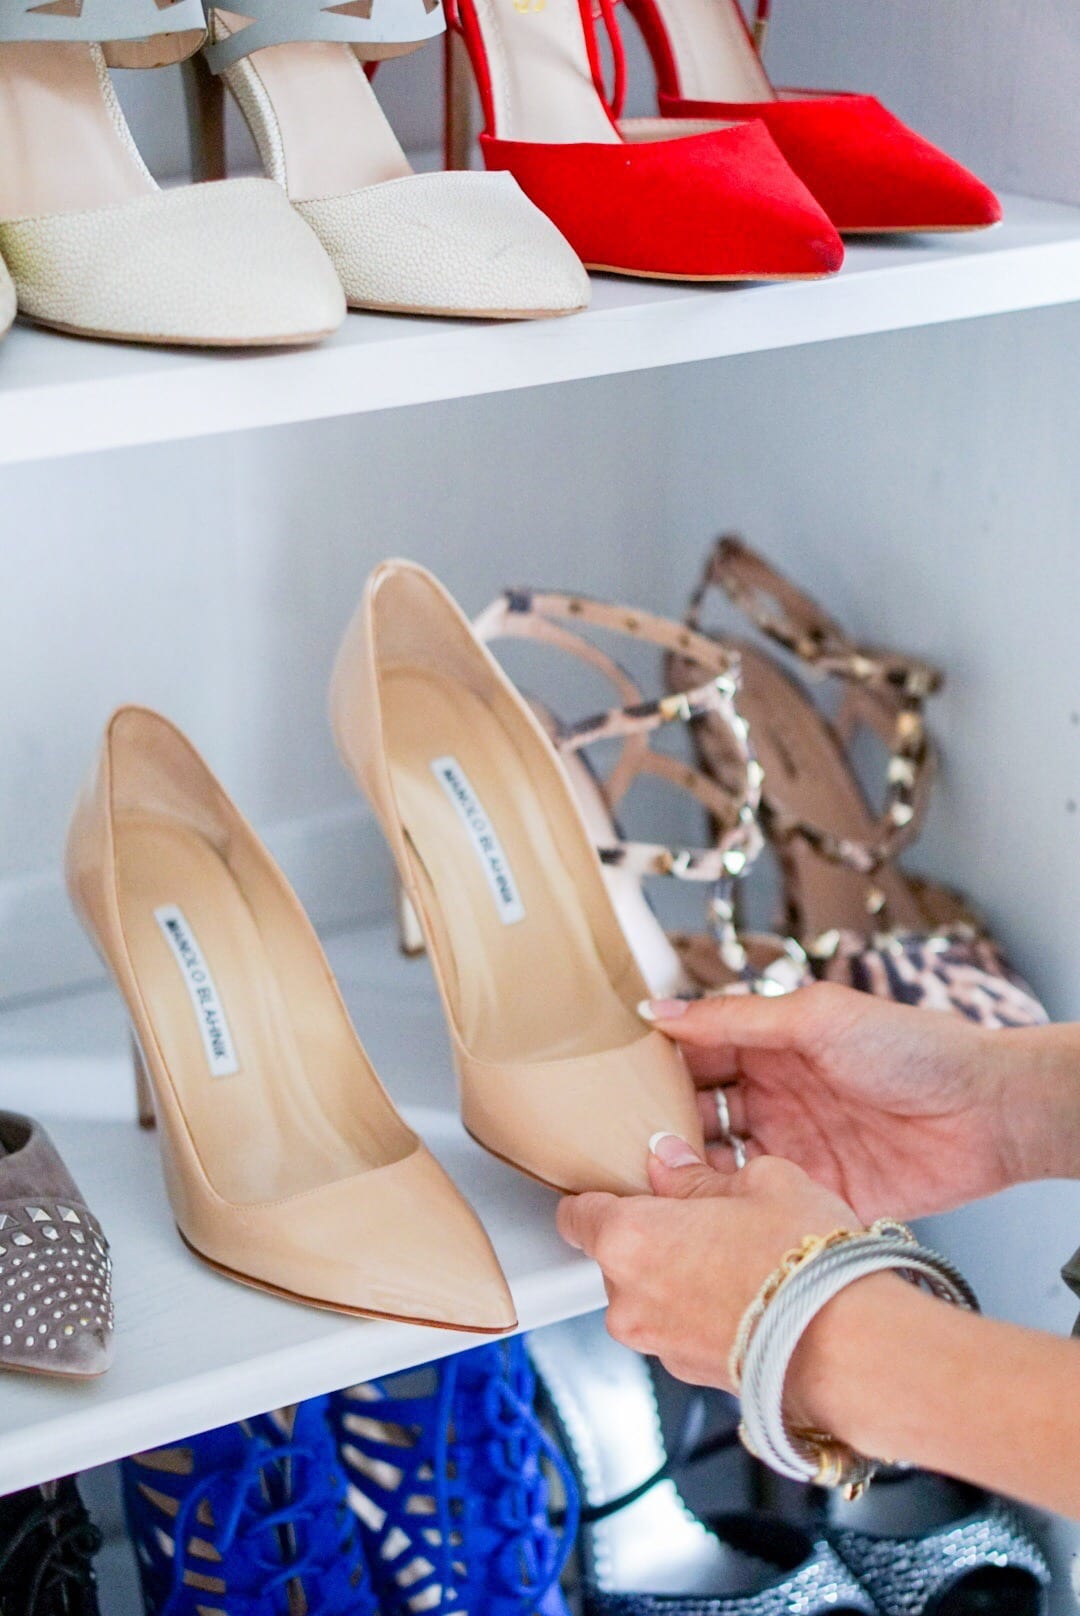 3 Things to Consider When Buying Designer Shoes